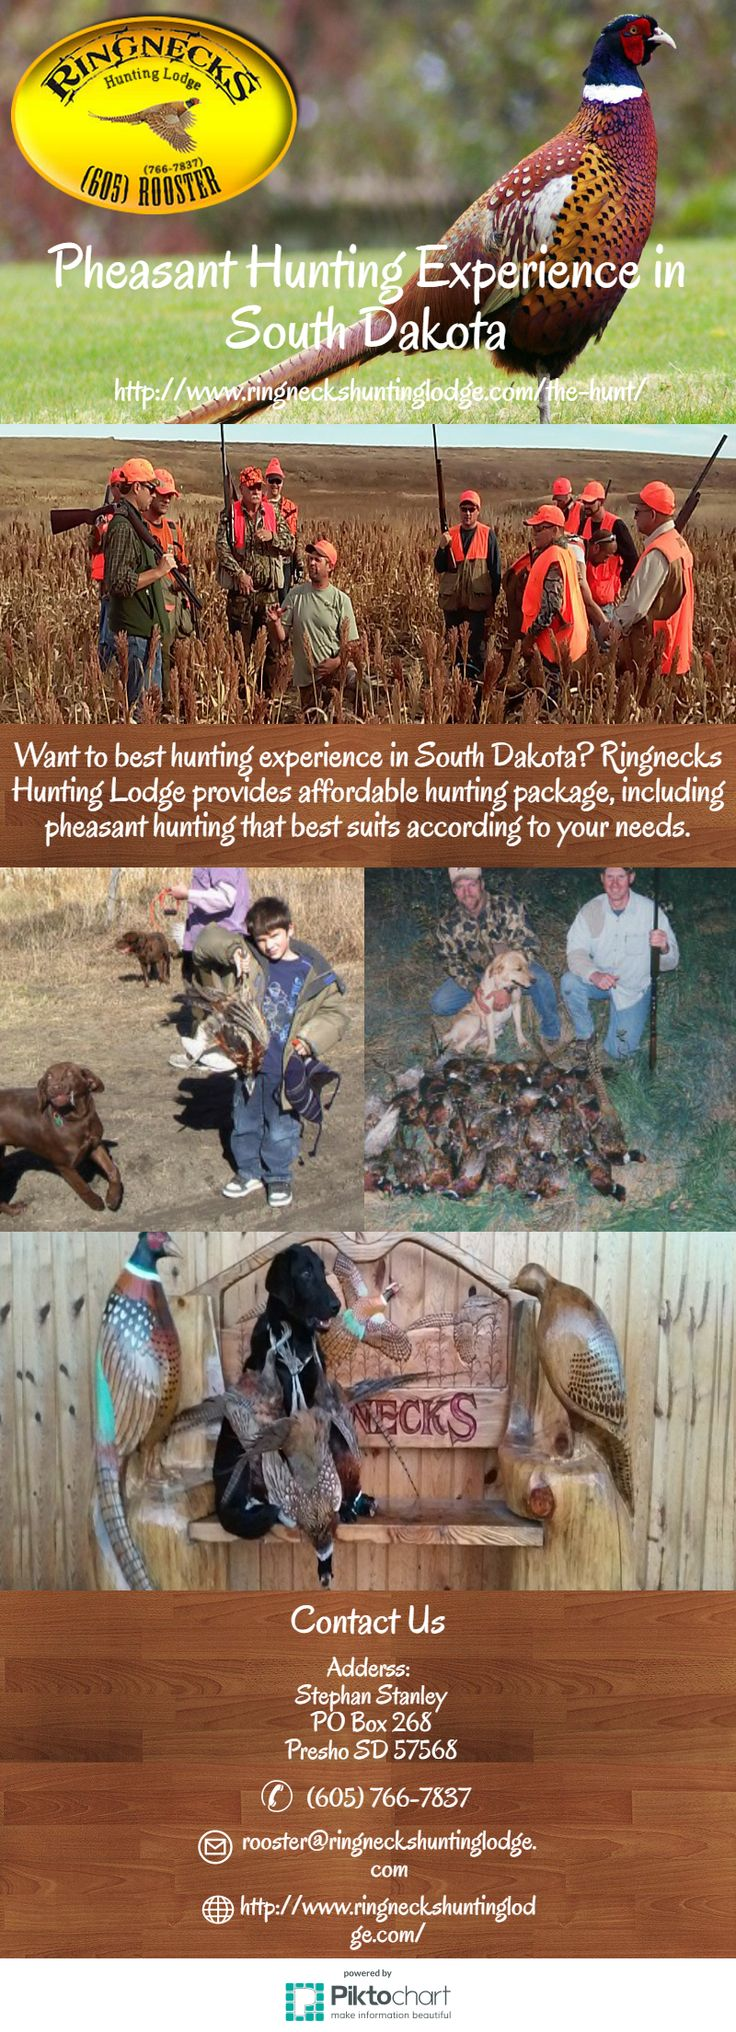 Want to best hunting experience in South Dakota? Ringnecks Hunting Lodge provides affordable hunting package, including pheasant hunting that best suits according to your needs.